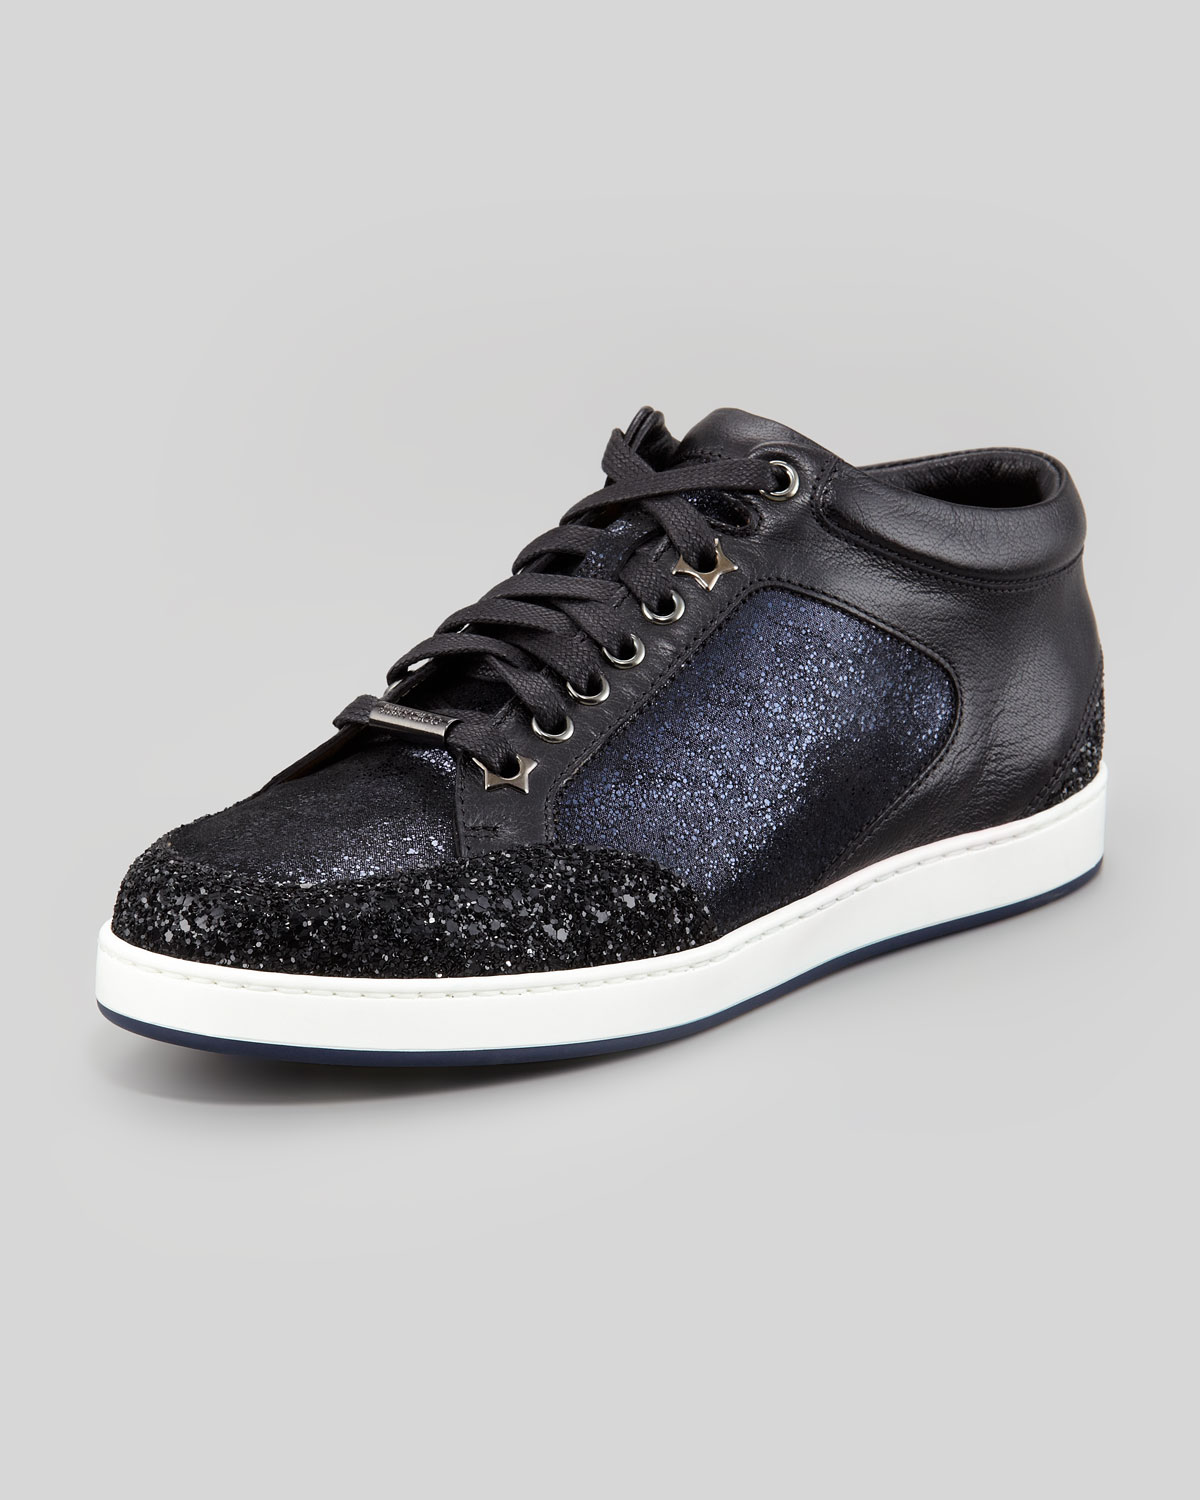 jimmy choo miami lowtop glitter sneaker in blue navy lyst. Black Bedroom Furniture Sets. Home Design Ideas